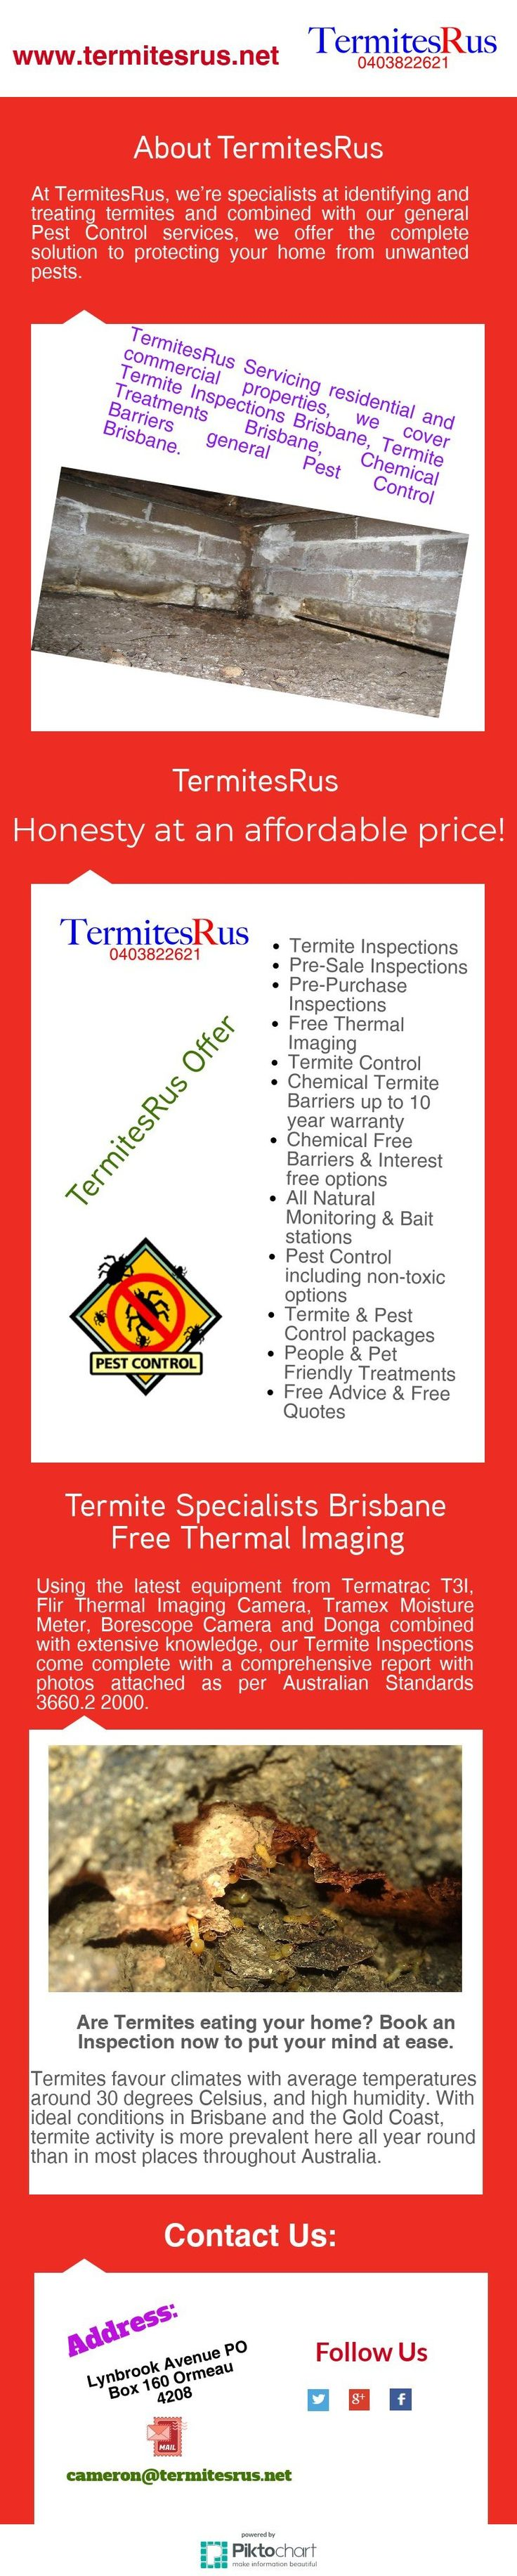 Best Chemical Termite Barriers in Brisbane : TermitesRus providing pest control for the house and for offices to protect your furniture from the pests. Our Chemical Termite Barriers in Brisbane are the best option for freedom from termites.